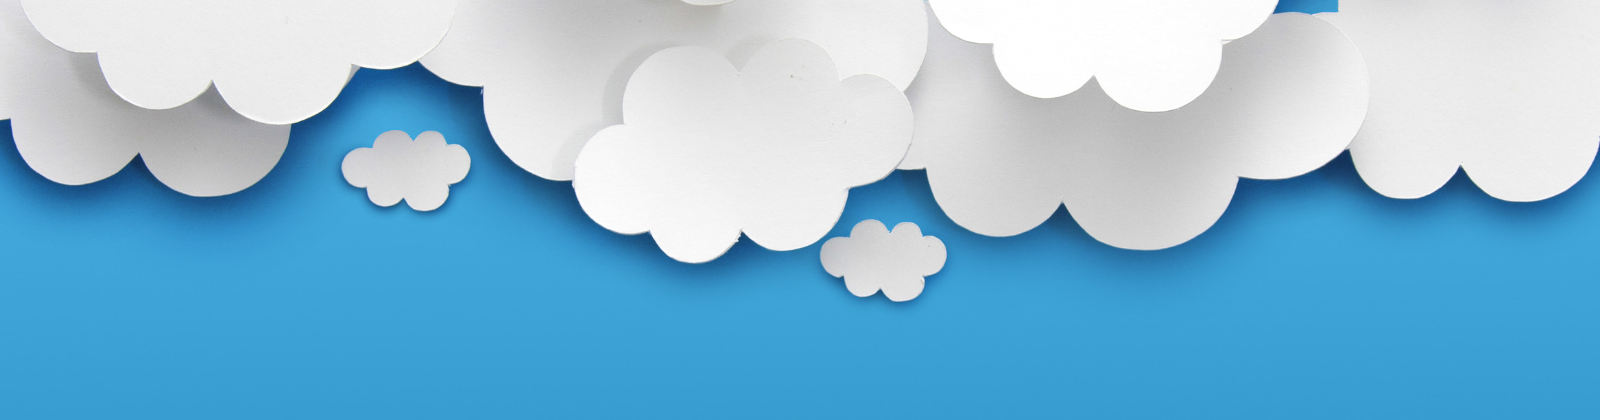 Graphpic image of clouds on a bright blue background